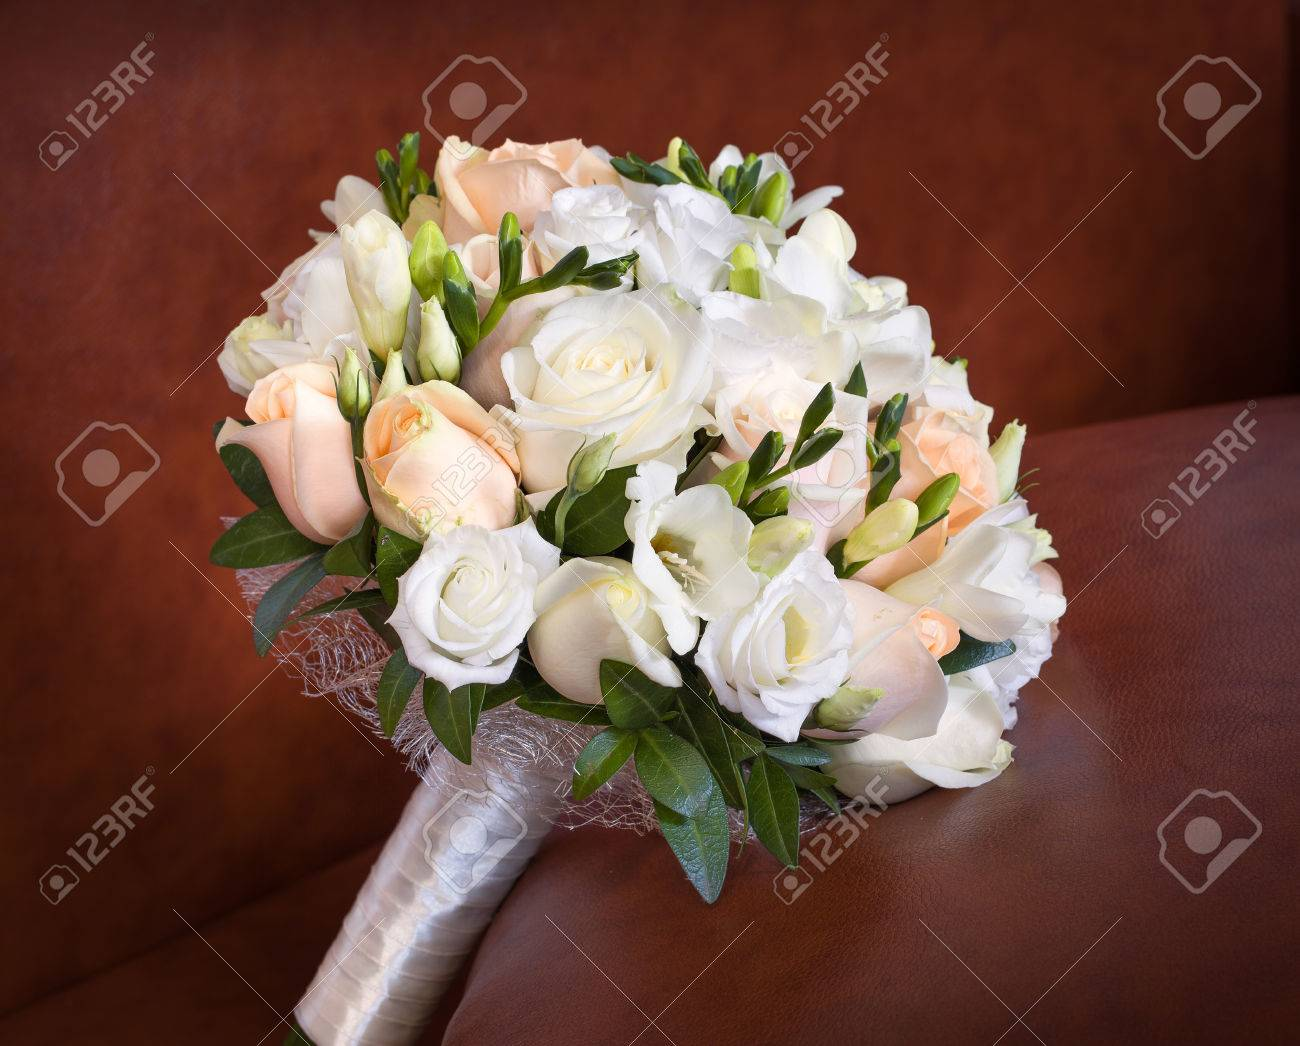 Bright Roses Wedding Bouquet On The Brown Leather Sofa. Stock Photo ...